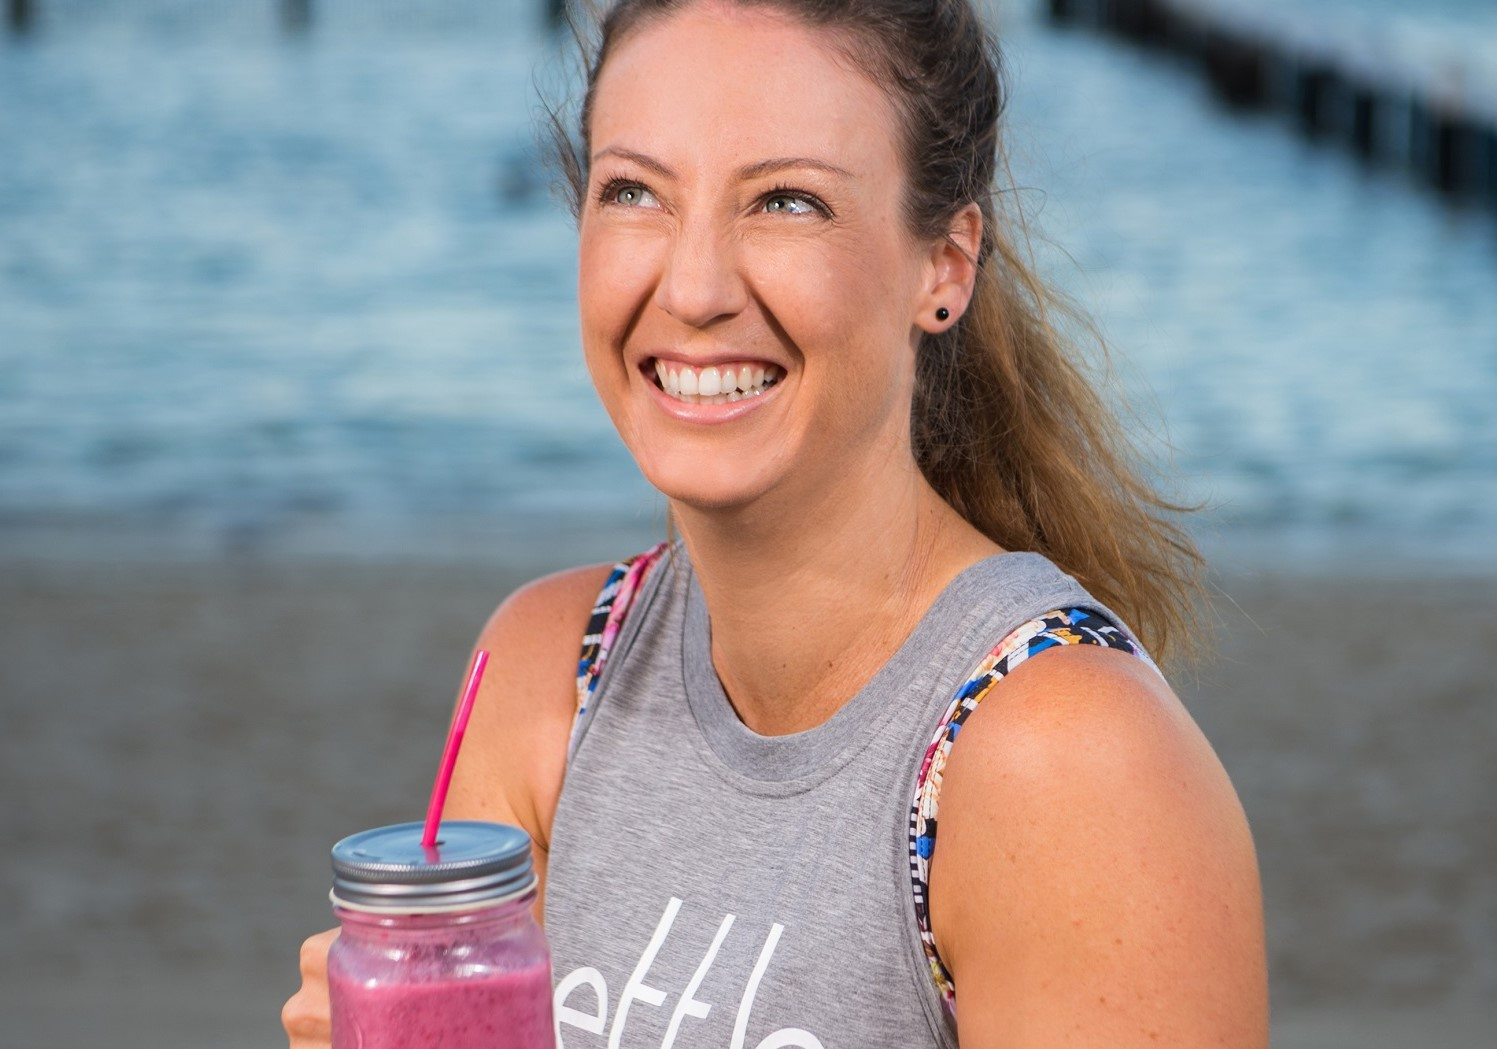 fettle-blog-smoothies-here-to-stay-peta-carige-2.jpg